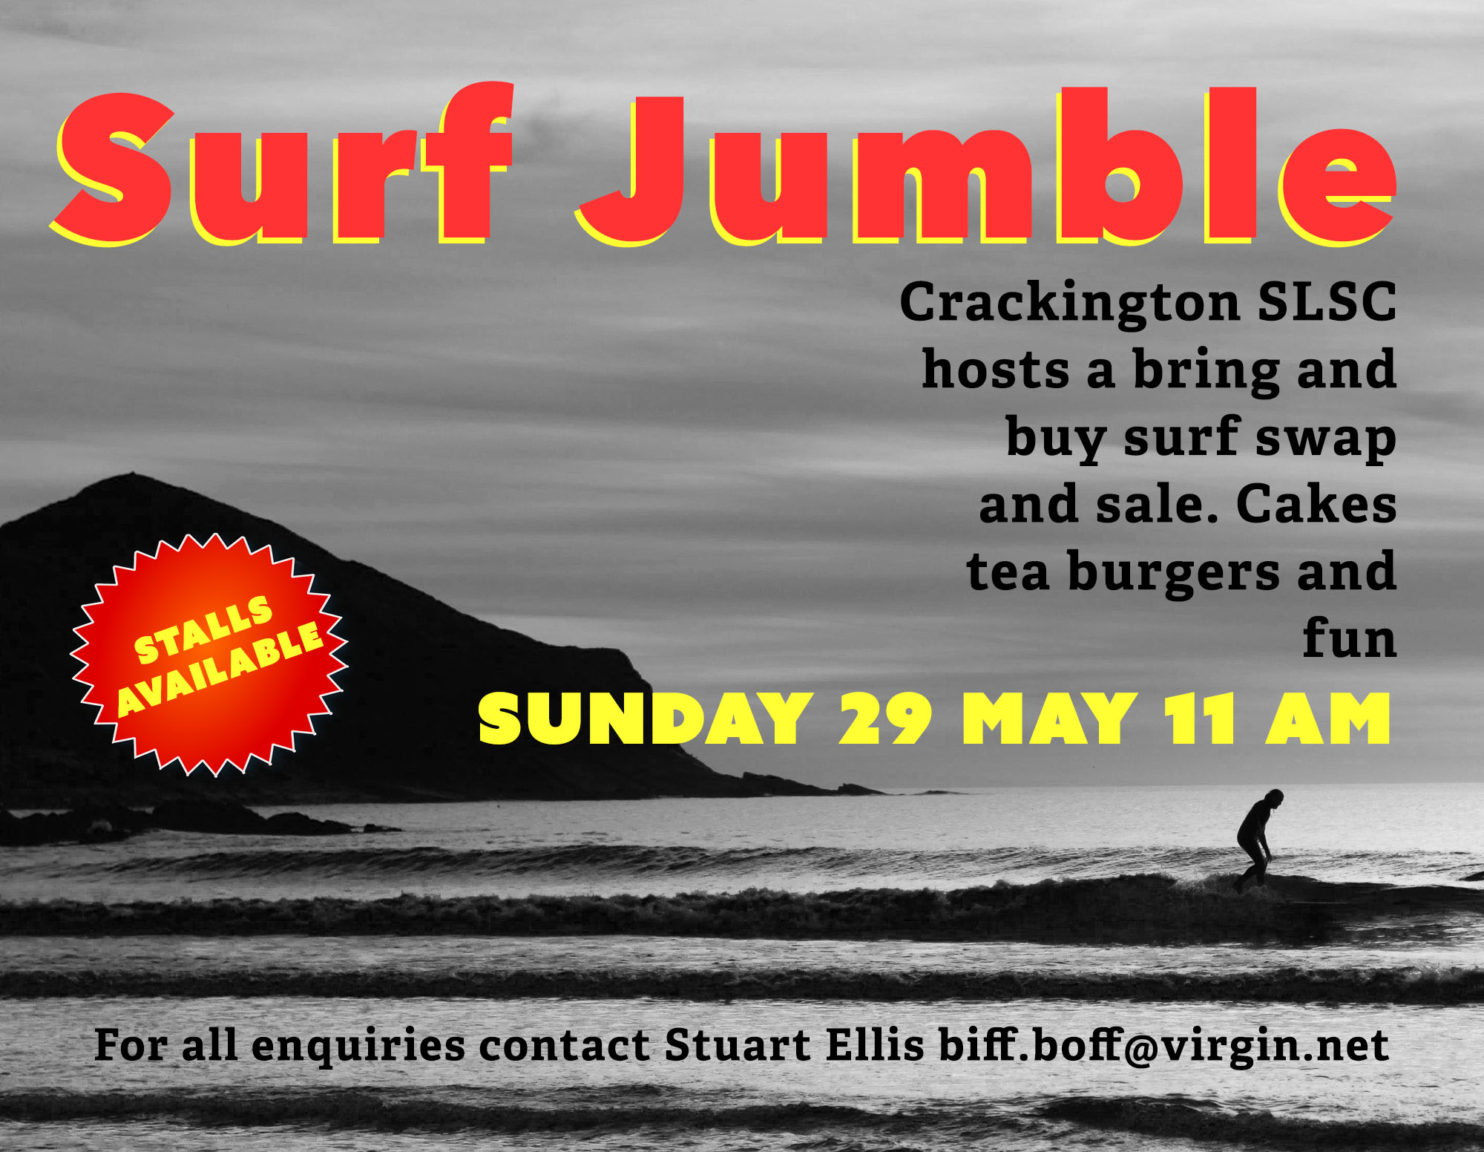 surf jumble crackington